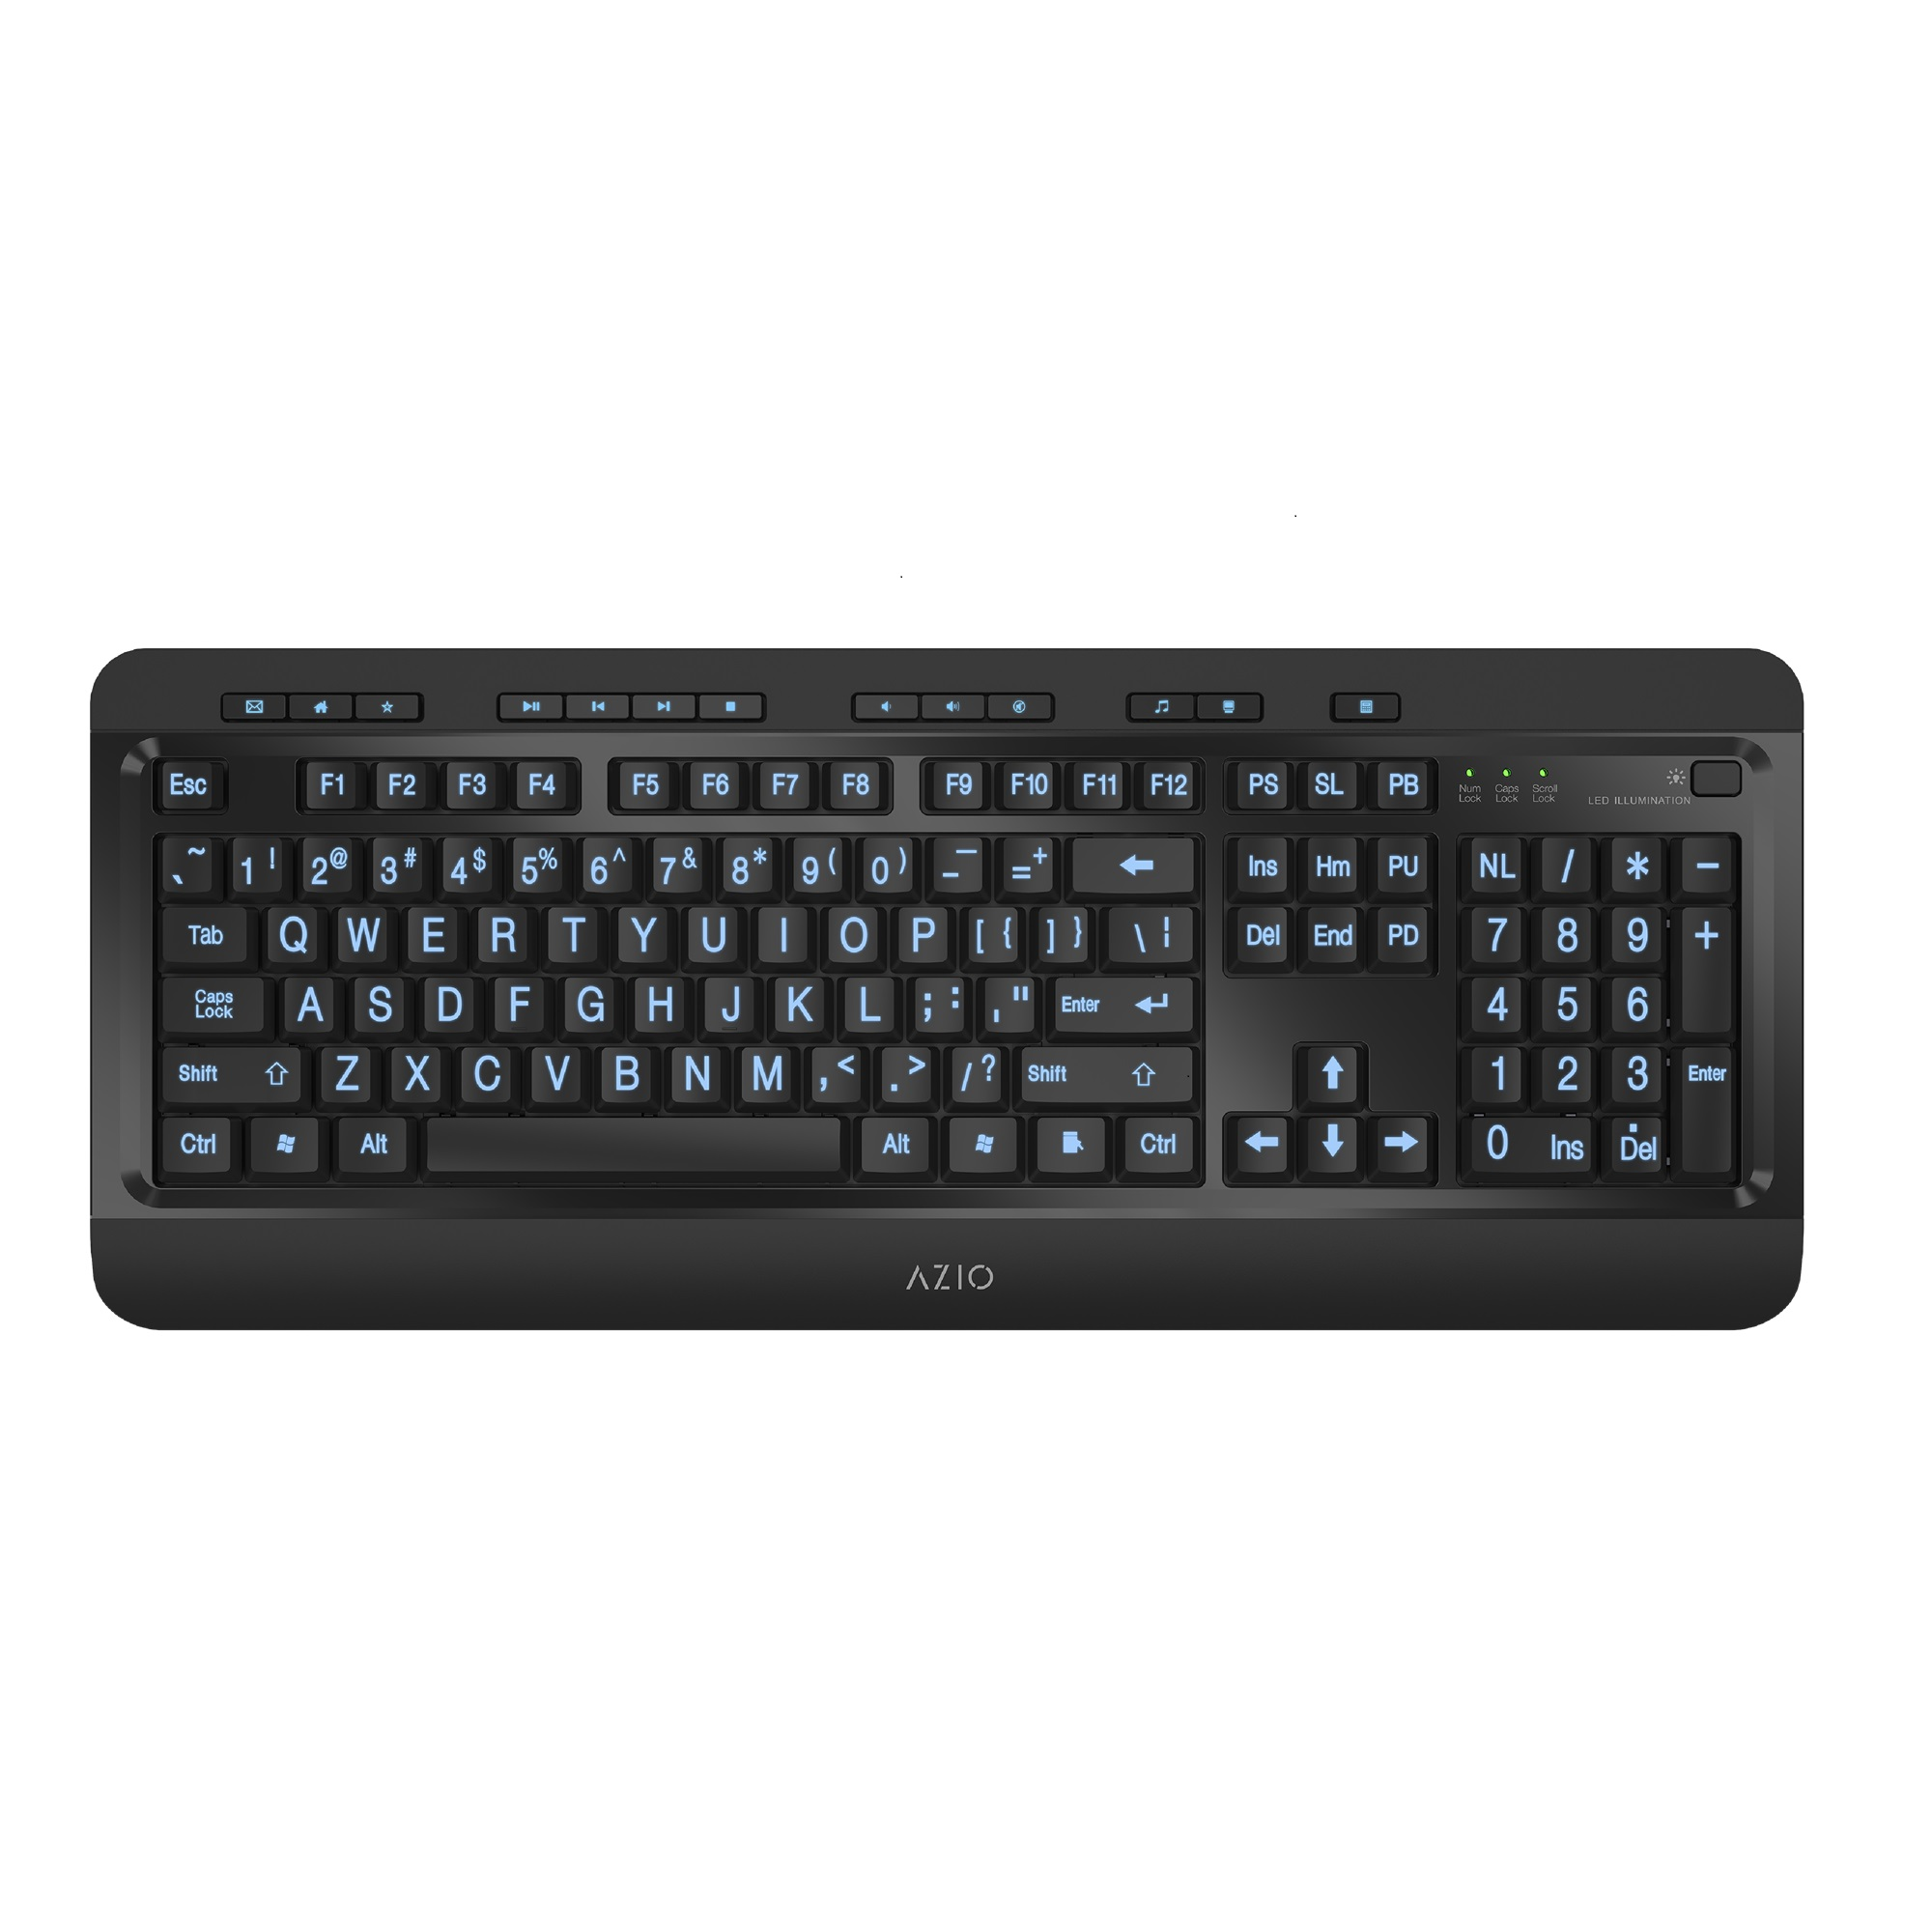 Azio Keyboard Tri-Color Backlit Large Print Wired USB KB505U